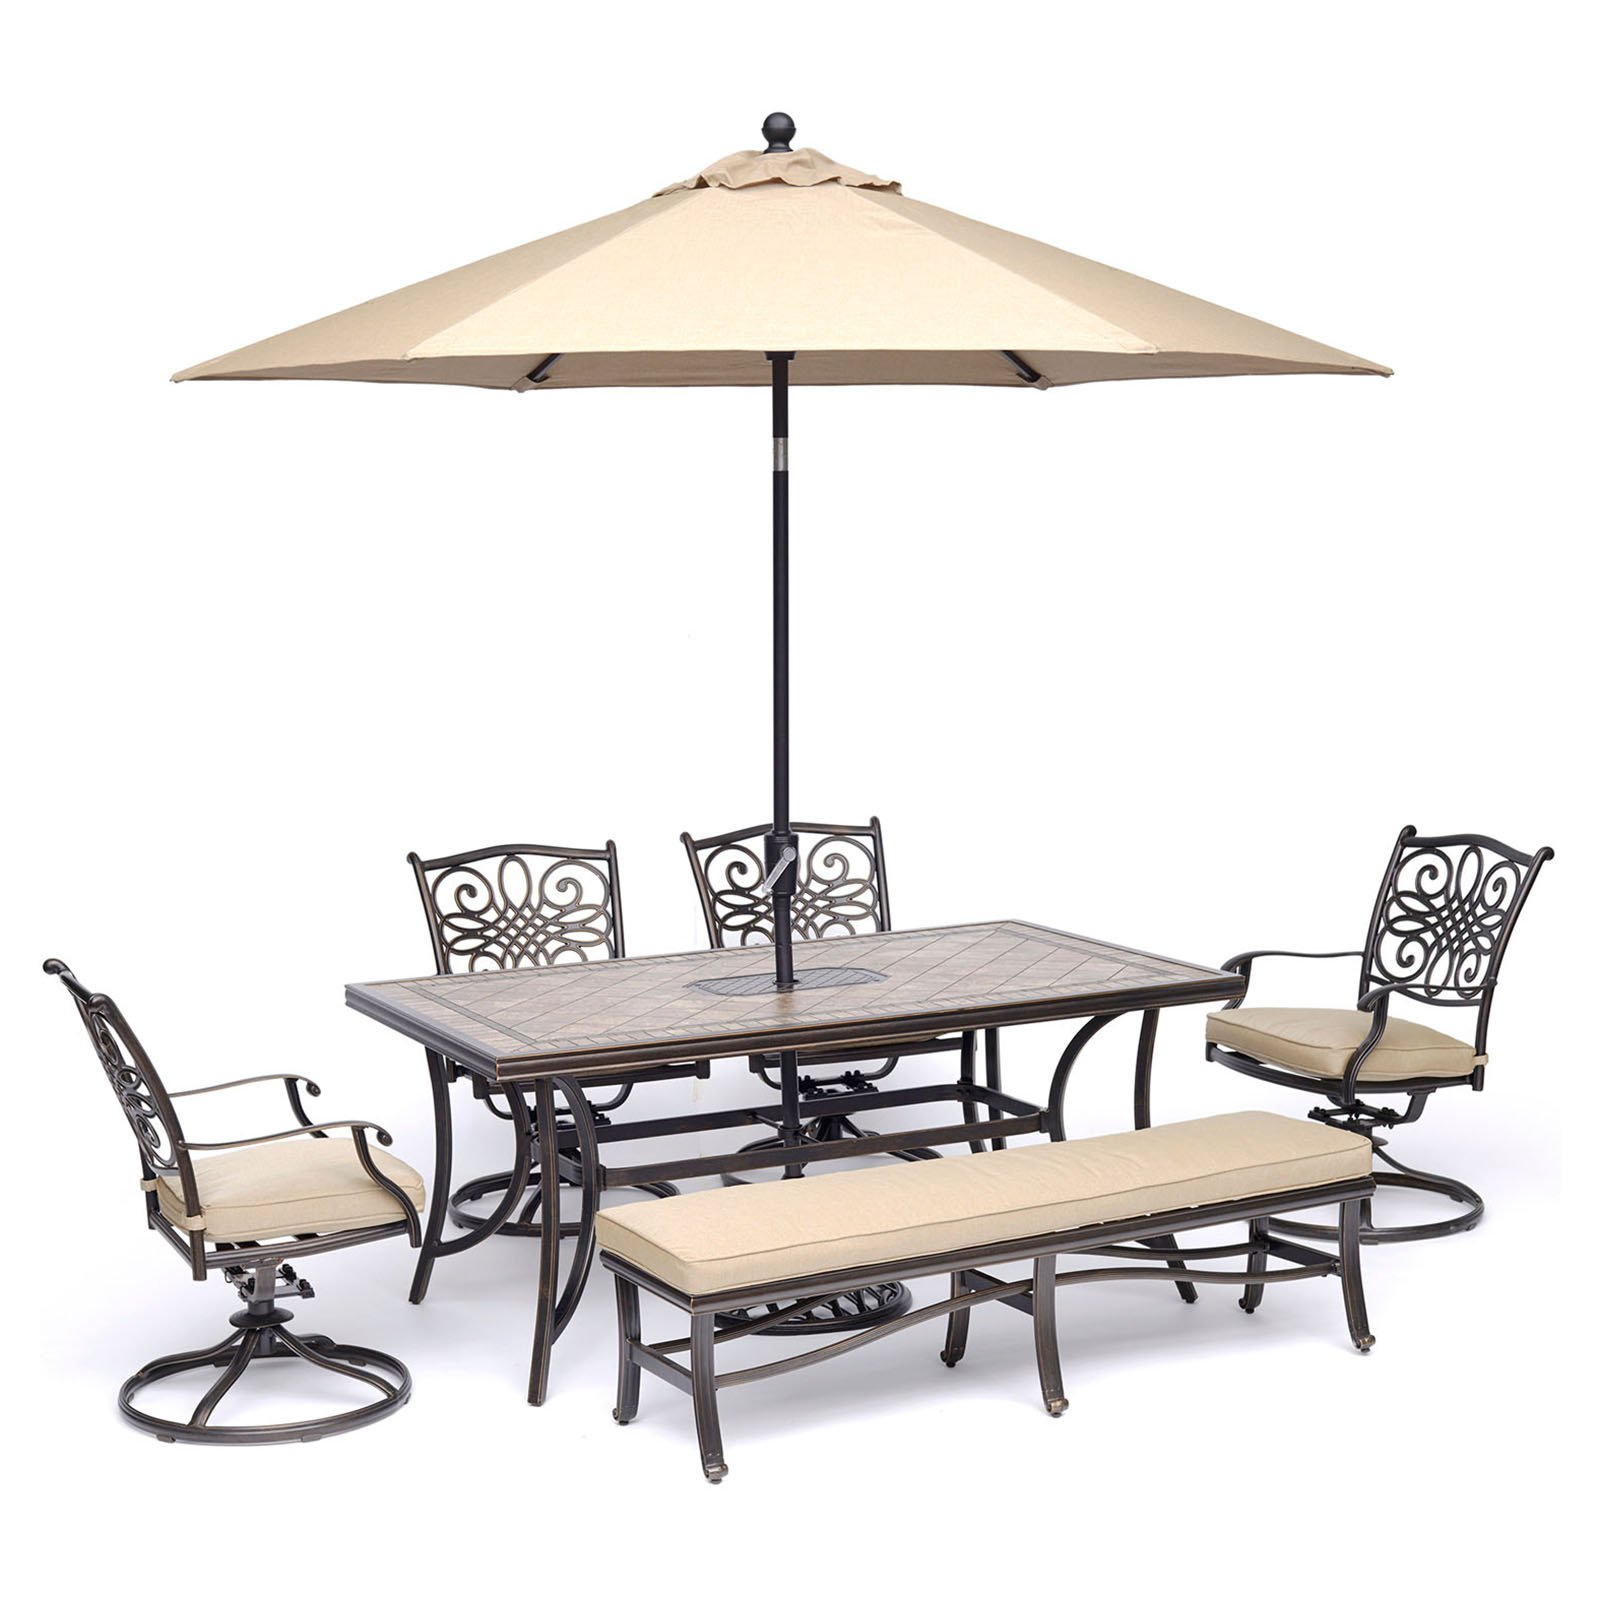 """Hanover Monaco 6-Piece Dining Set in Tan with Four Swivel Rockers, a Cushioned Bench, and a 40"""" x 68"""" Tile-Top Table"""